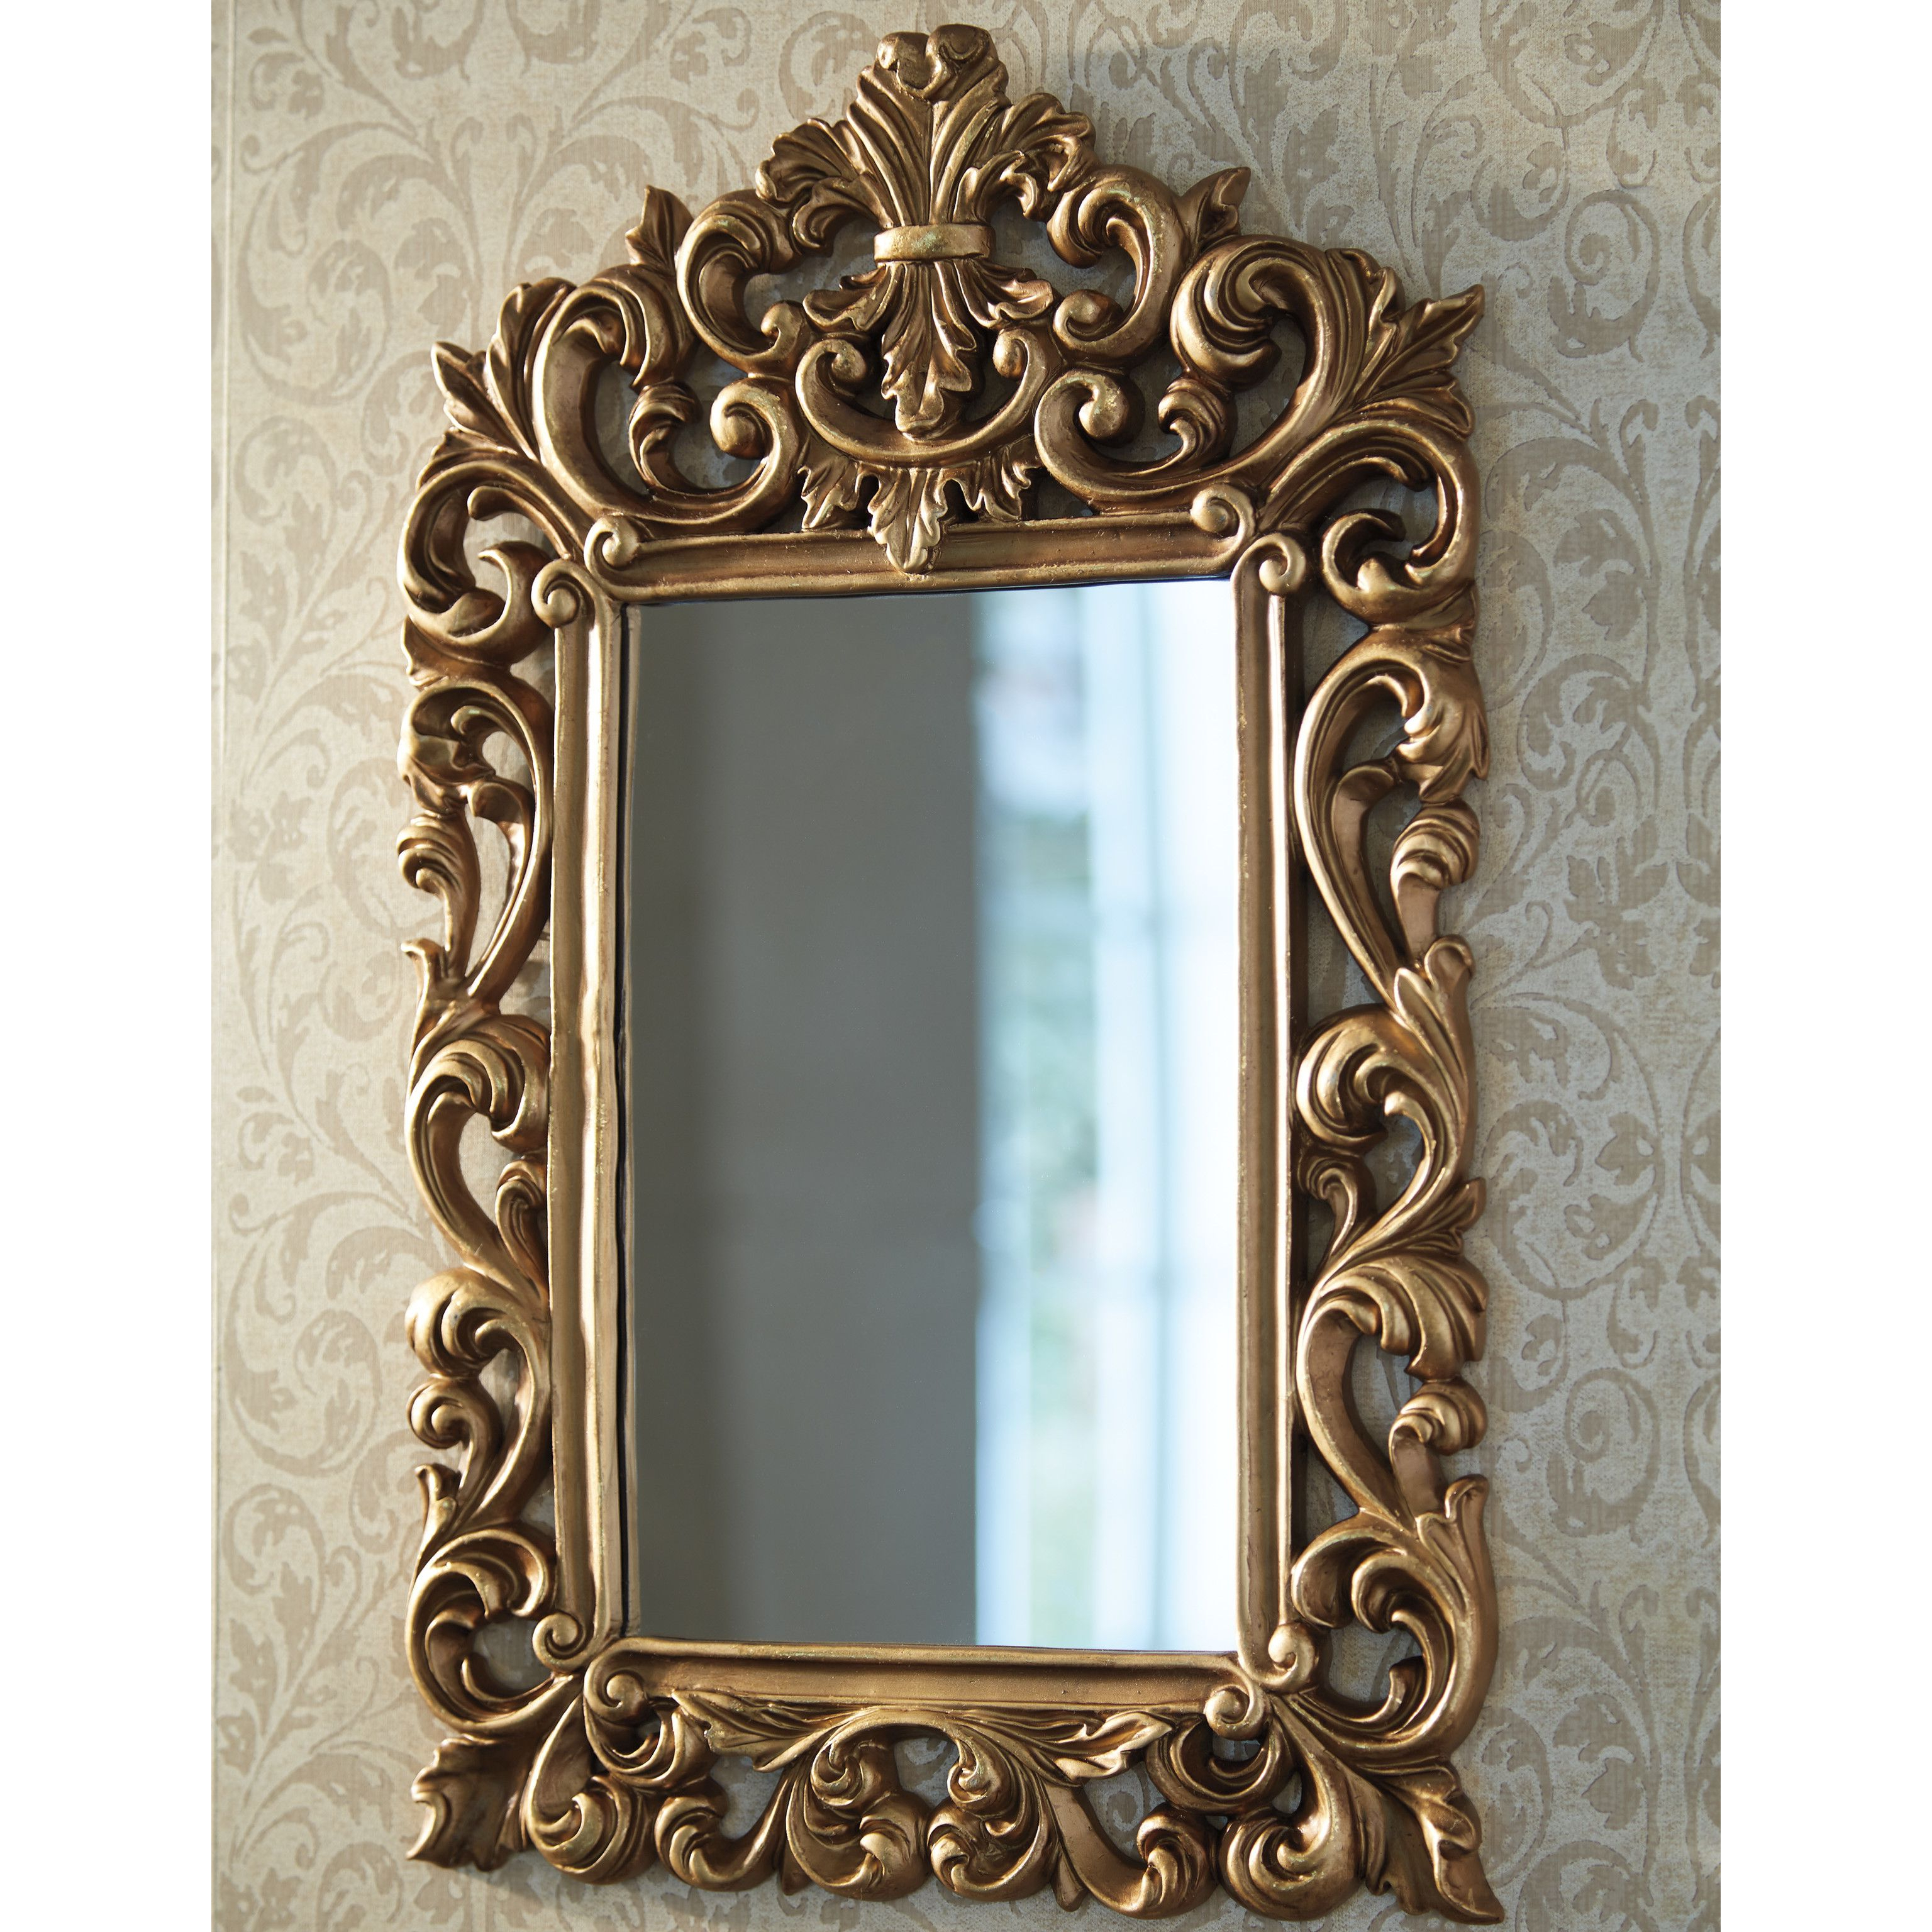 Most Popular Antique Gold Wall Mirrors Regarding Astoria Grand Antique Gold Wall Mirror (Gallery 7 of 20)